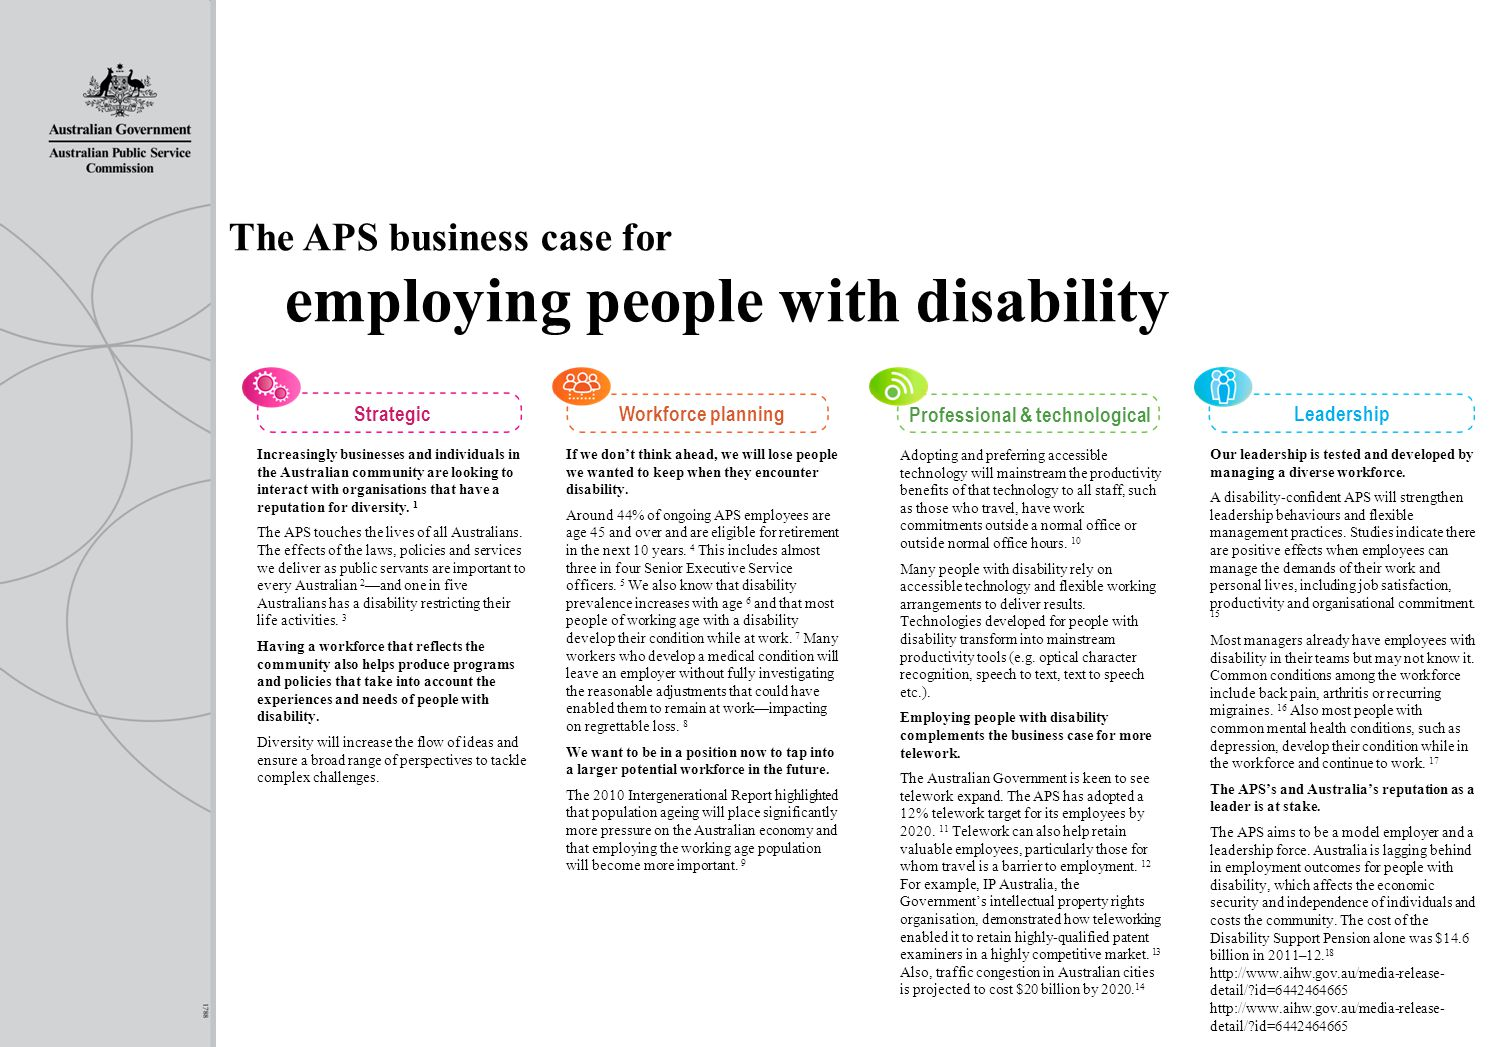 Leadership Our leadership is tested and developed by managing a diverse workforce. A disability-confident APS will strengthen leadership behaviours an